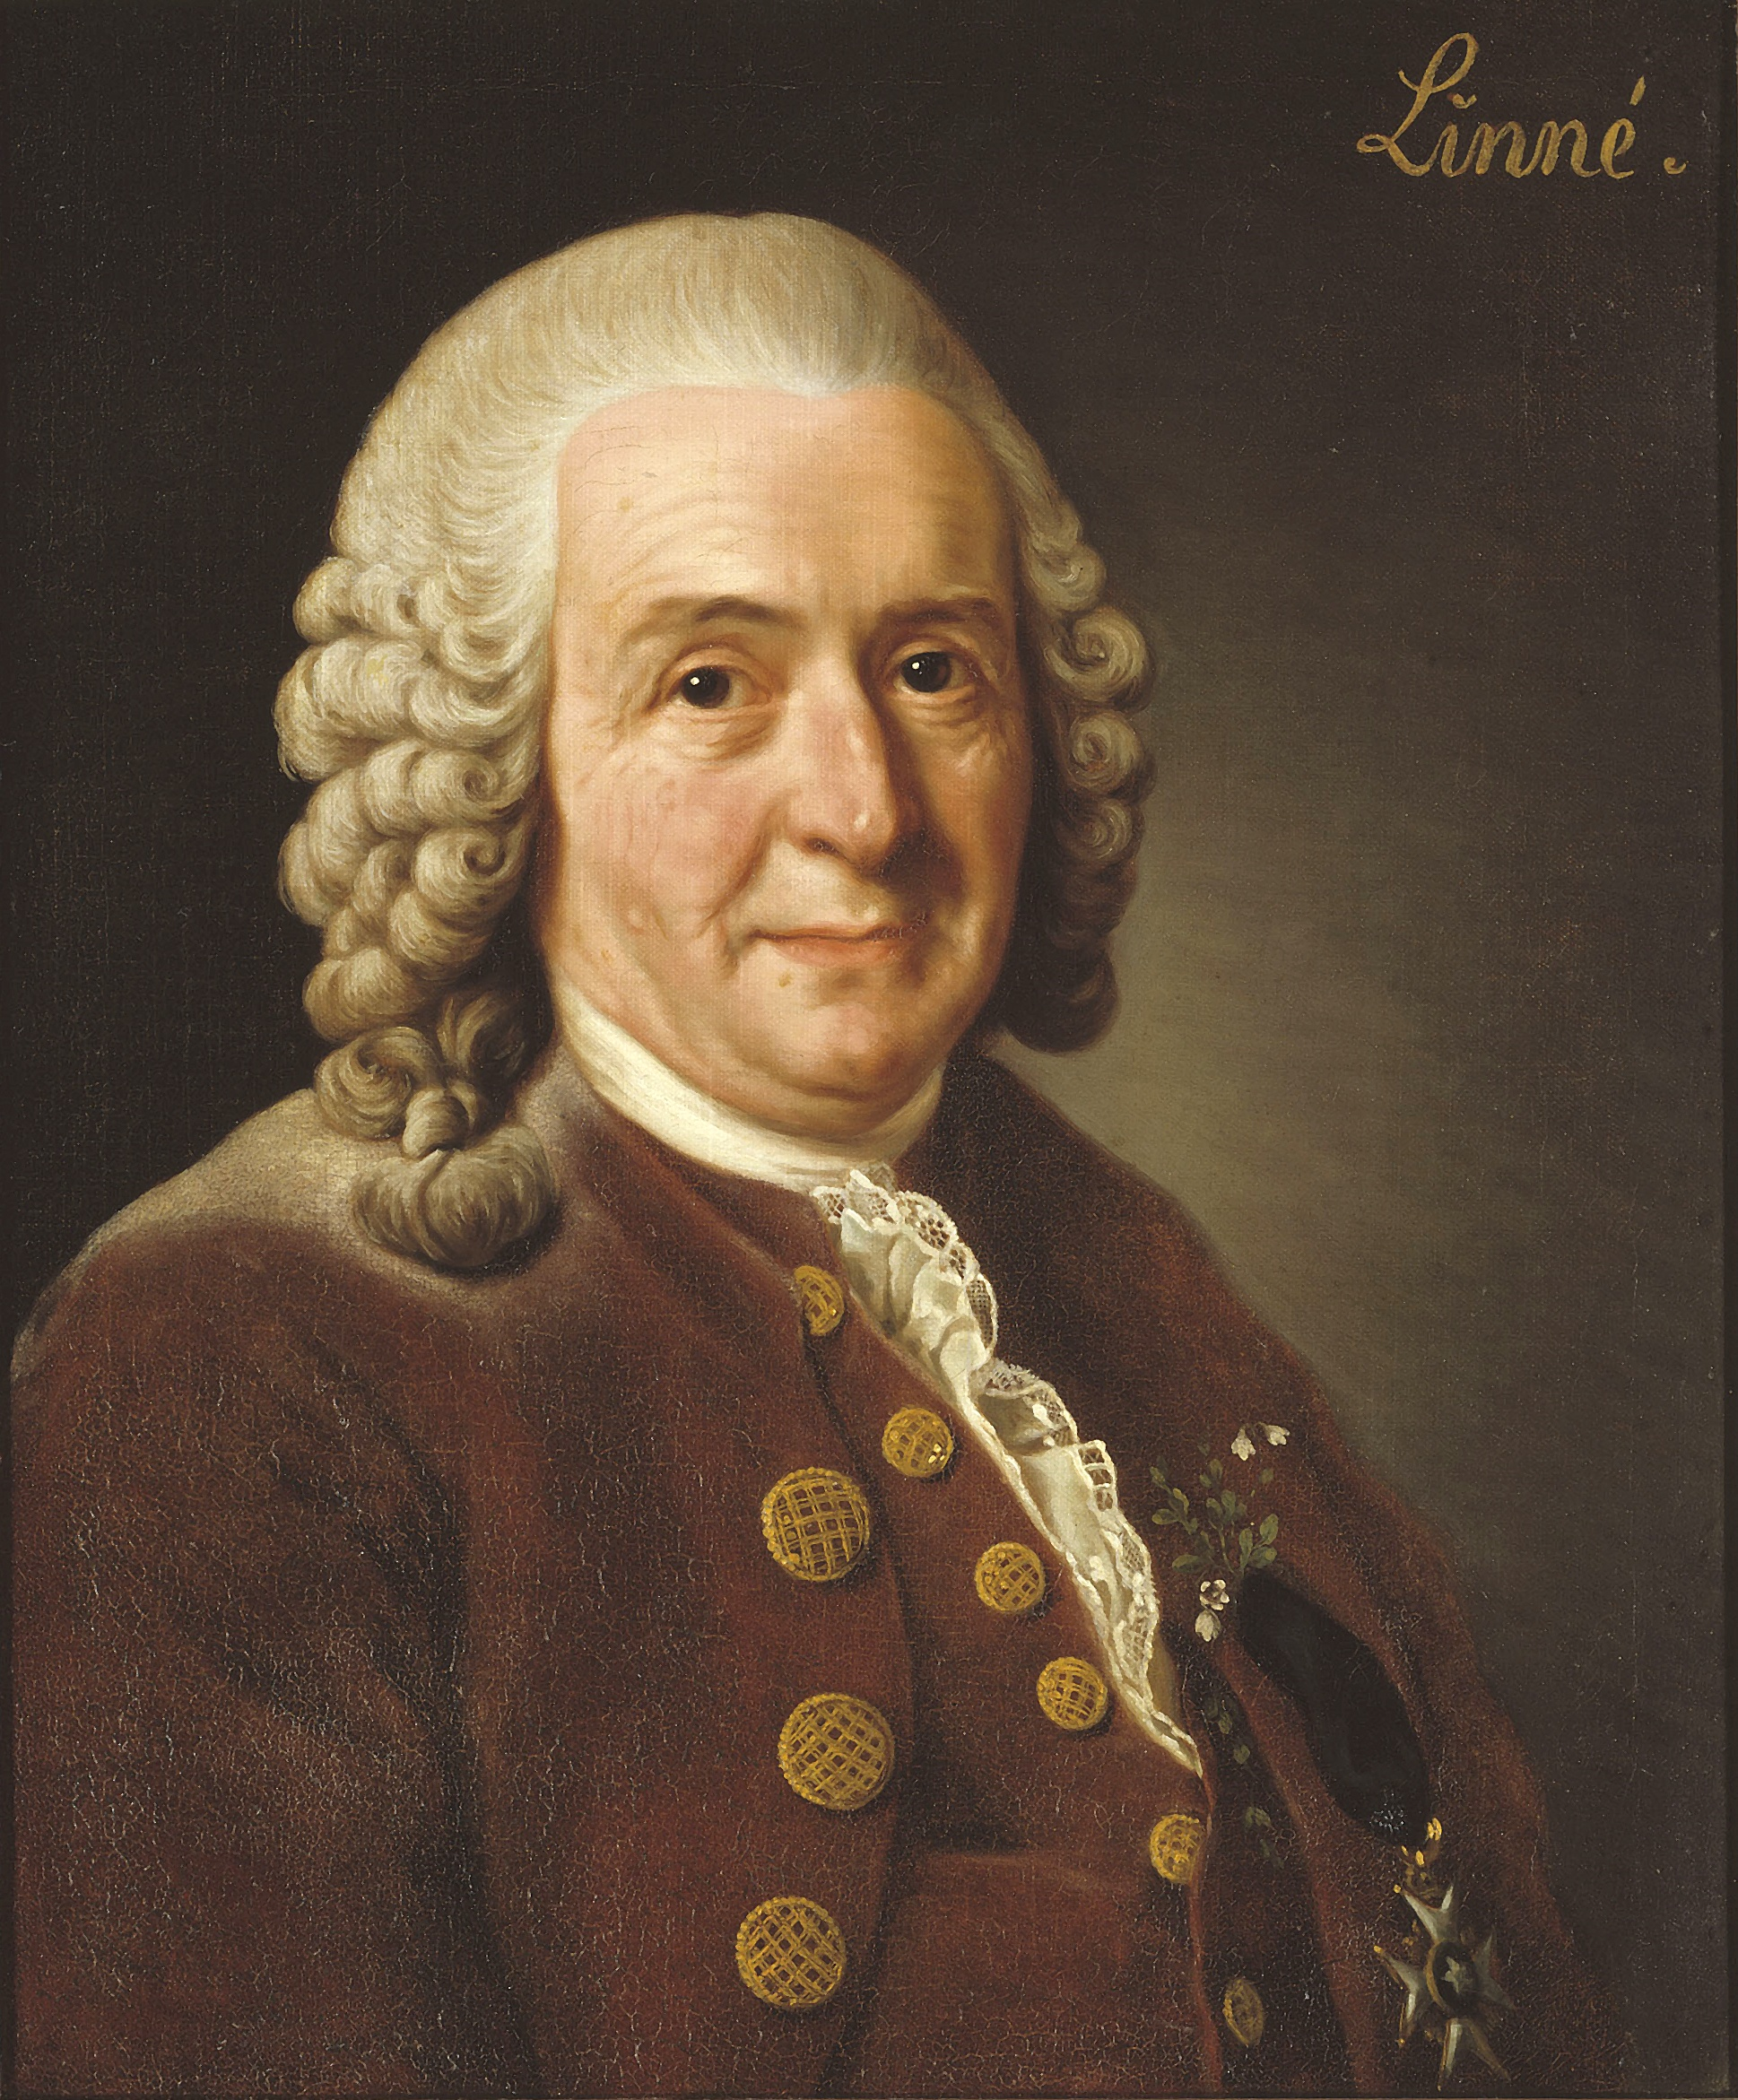 SPIRITUALITY SCIENCE - THE HUMAN SPECIES: Carolus Linnaeus. Taxonomist, was the founder of the binomial system of nomenclature and the originator of modern scientific classification of plants and animals. Taxonomy is the branch of Natural Science that deals with systematic categorization of organisms.